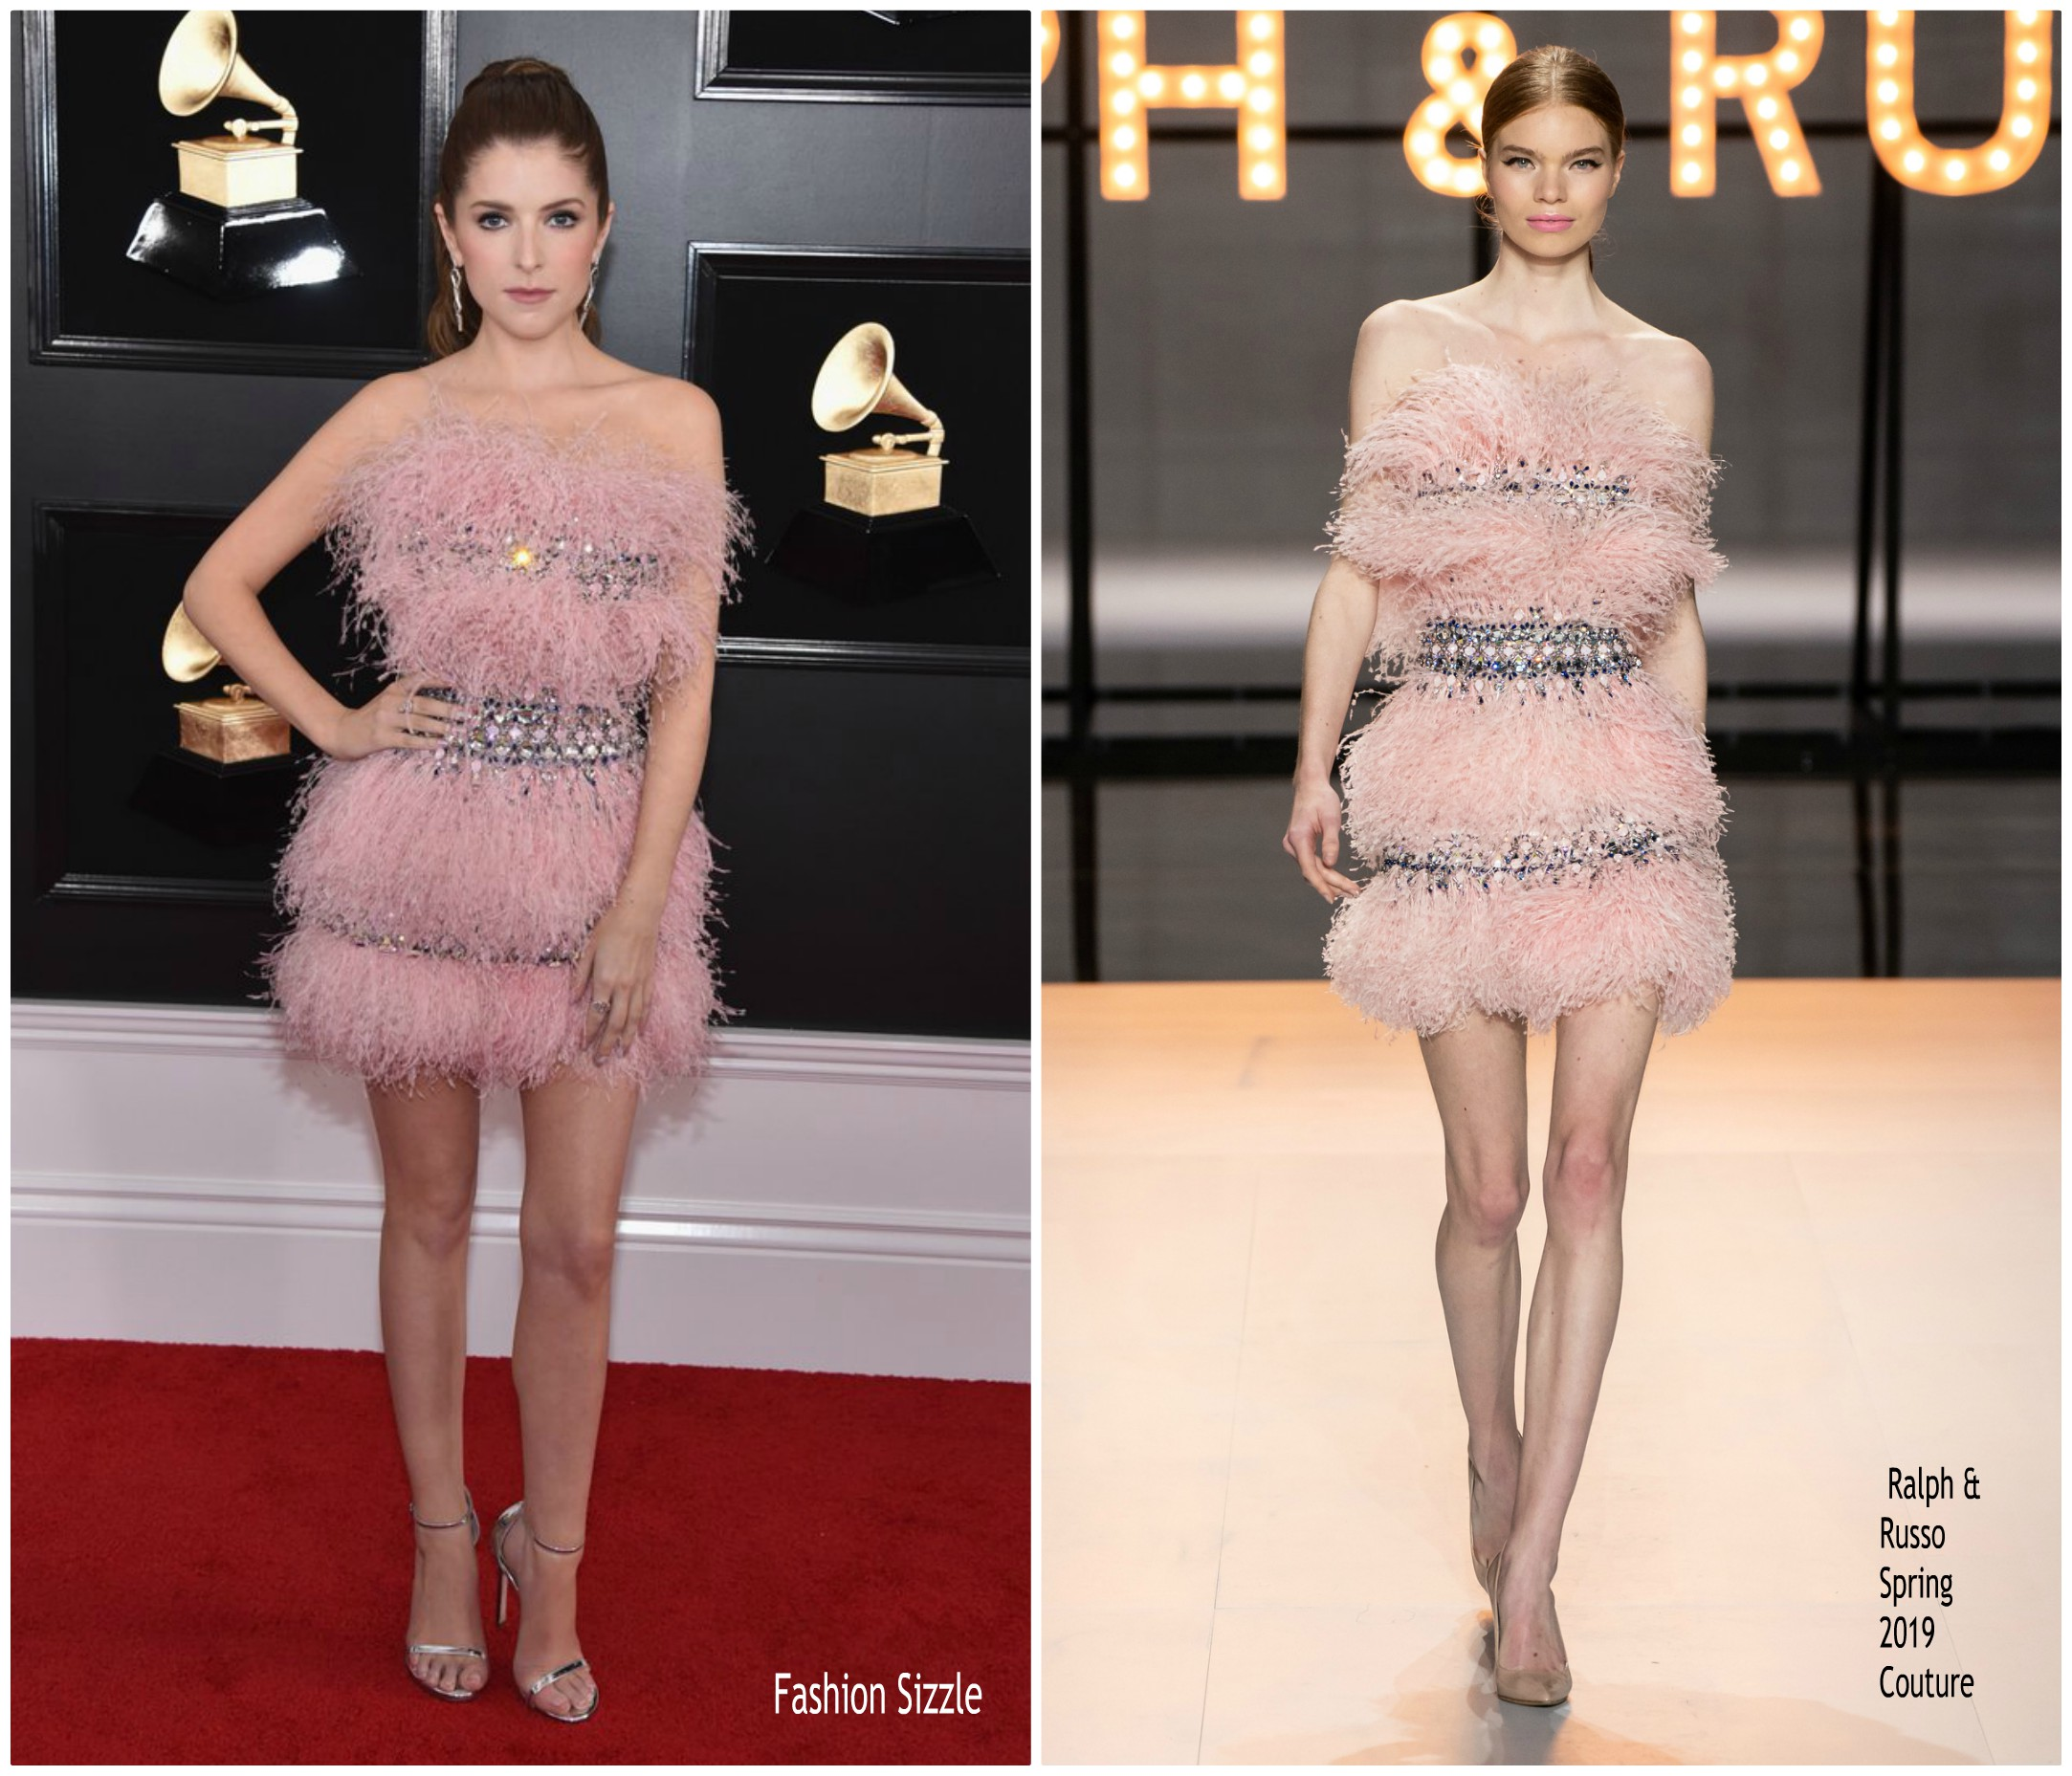 anna-kendrick-in-ralph-russo-couture-2019-grammy-awards